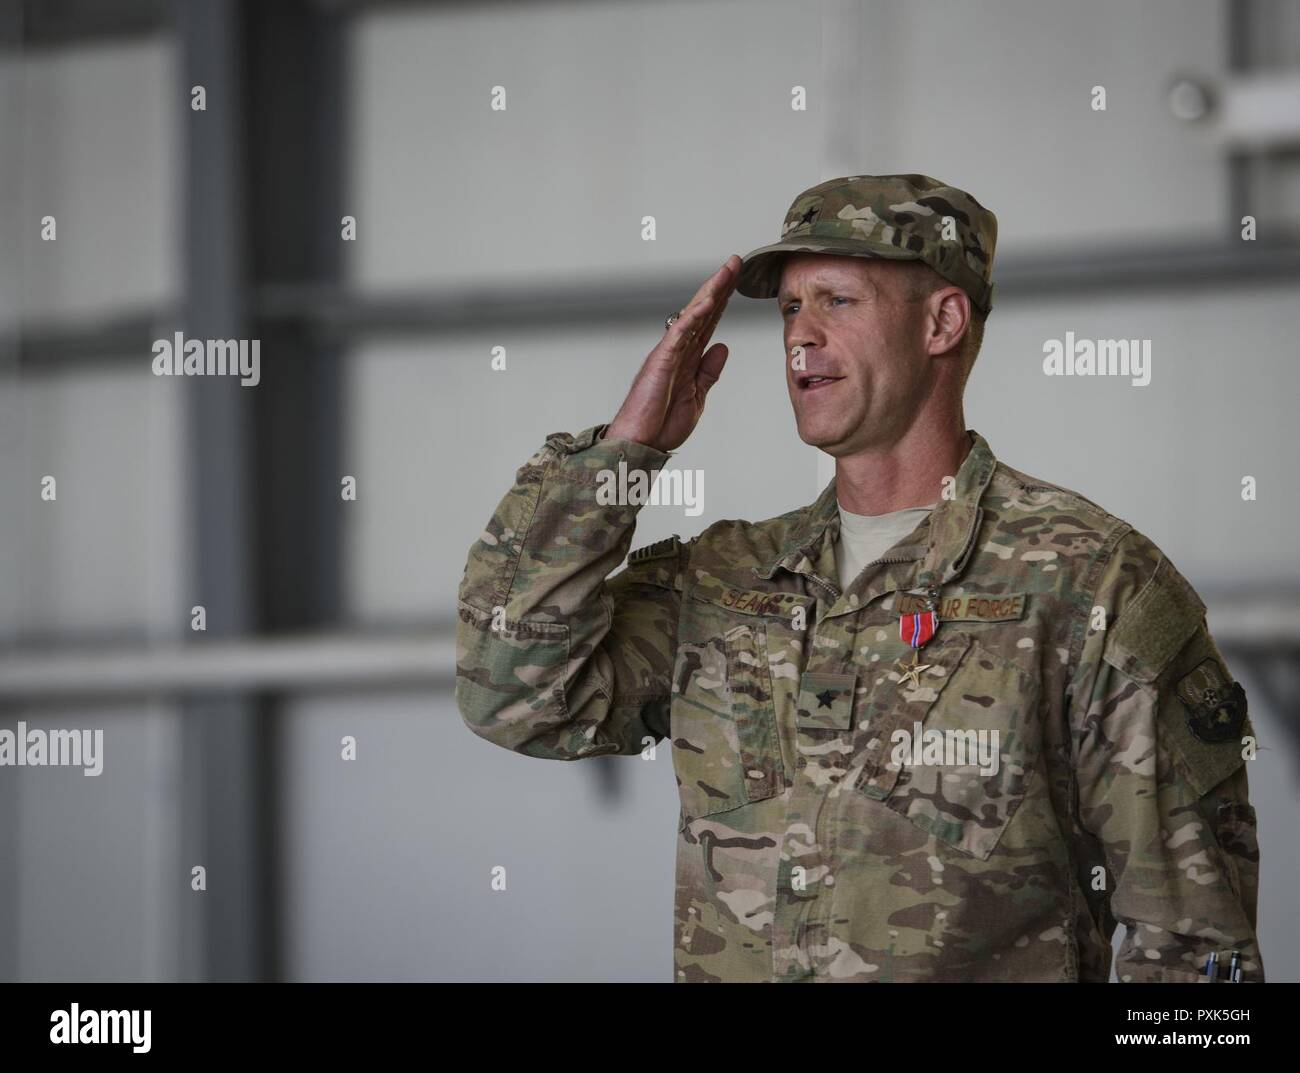 Brig. Gen. Jim Sears renders his final salute as the 455th Air Expeditionary Wing commander during a change of command ceremony at Bagram Airfield, Afghanistan, June 3, 2017. Sears commanded the 455th AEW for the last 12 months. During his time at Bagram, Sears' leadership enabled 15,800 combat sorties, accumulating to 102,877 combat hours, which resulted in more than 1,369 kinetic strike and 2,836 enemies killed in action. Stock Photo